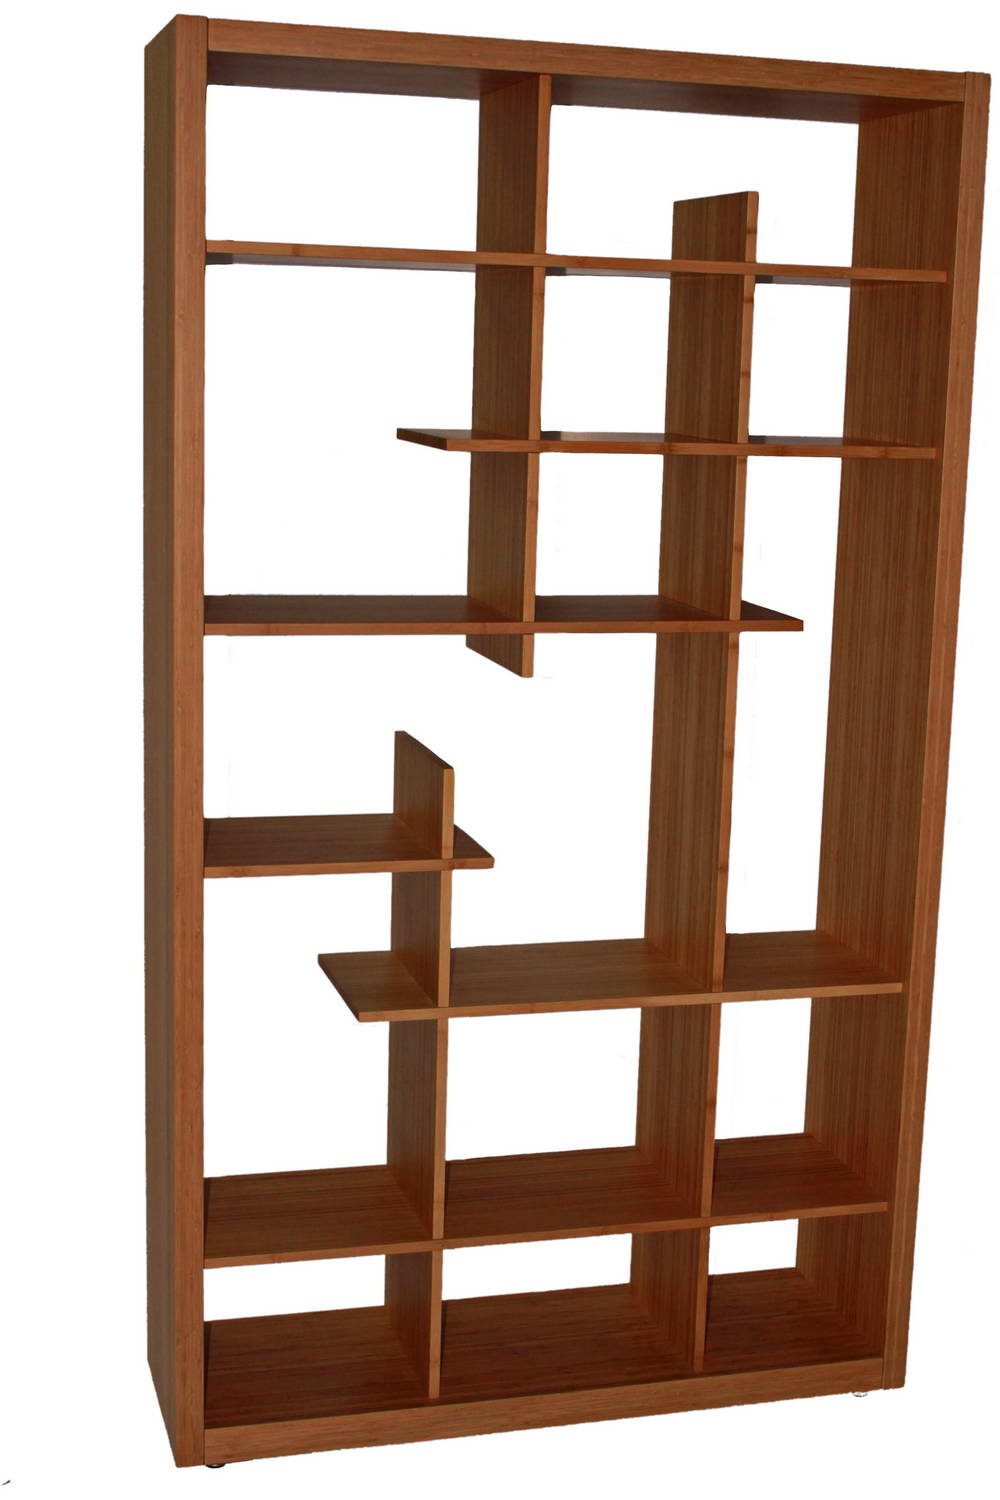 Lattice Shelving Unit (6211)